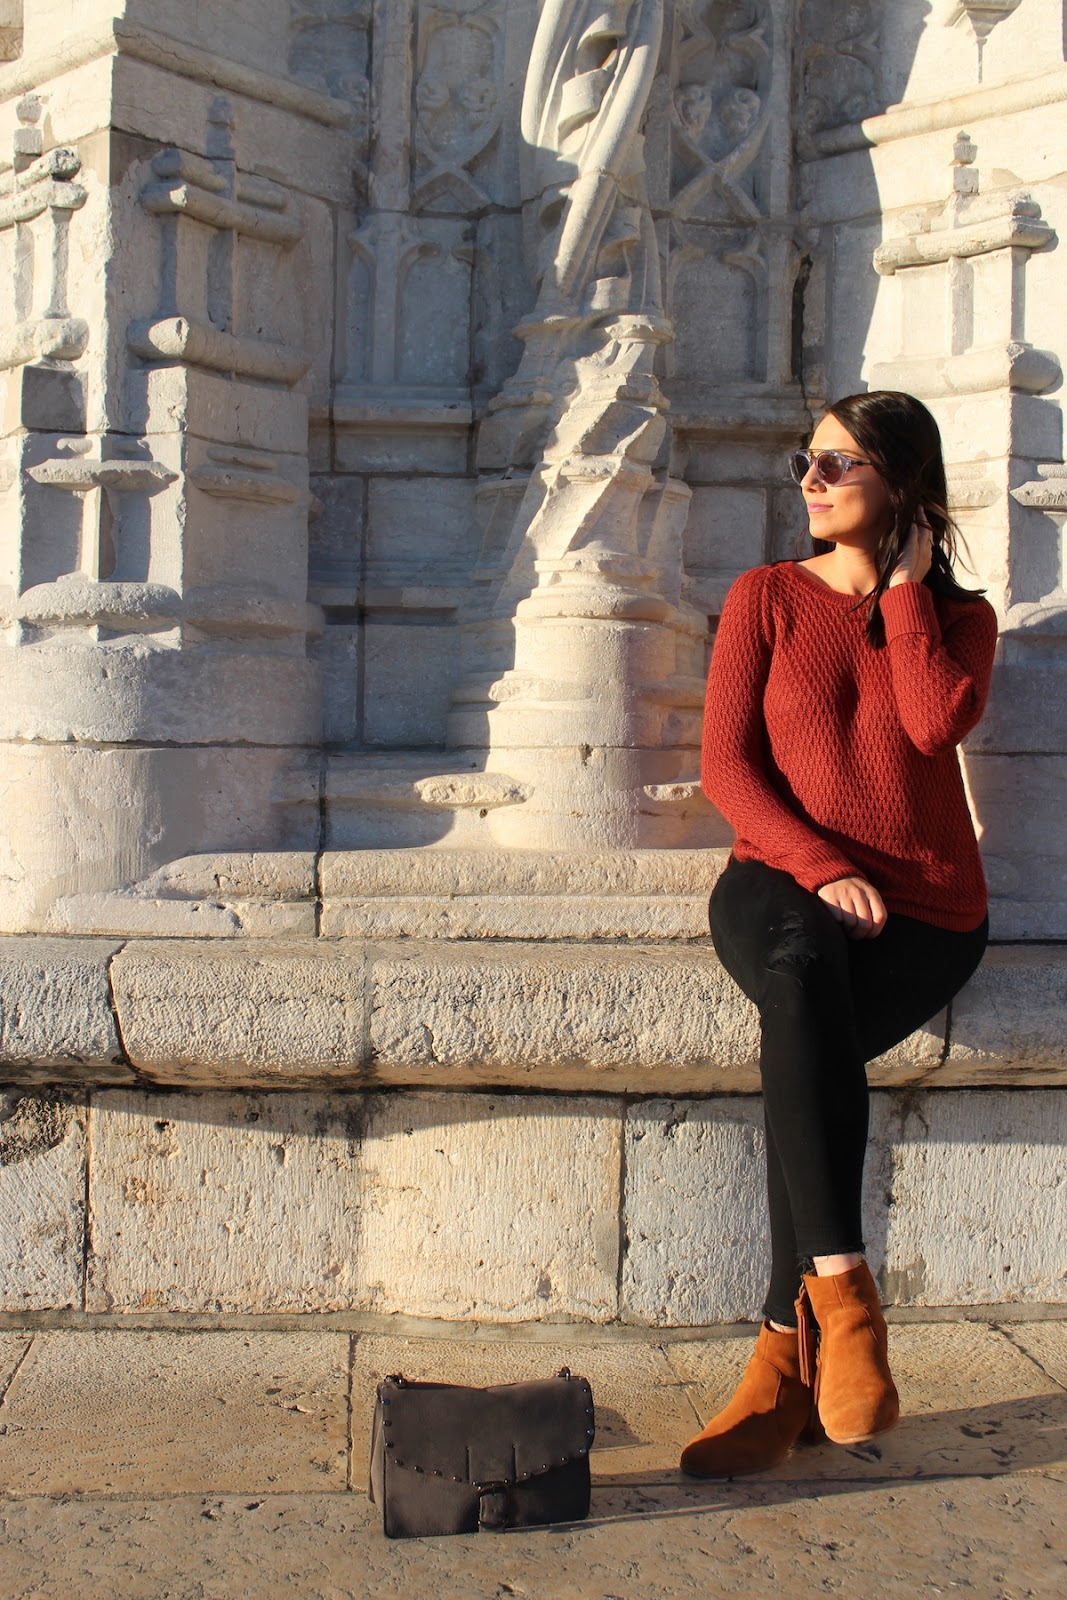 This photo shows me in my fall outfit (red sweater, black jeans, sunglasses and heeled booties) sitting on the steps of the Lisbon Cathedral in Lisbon, Portugal.